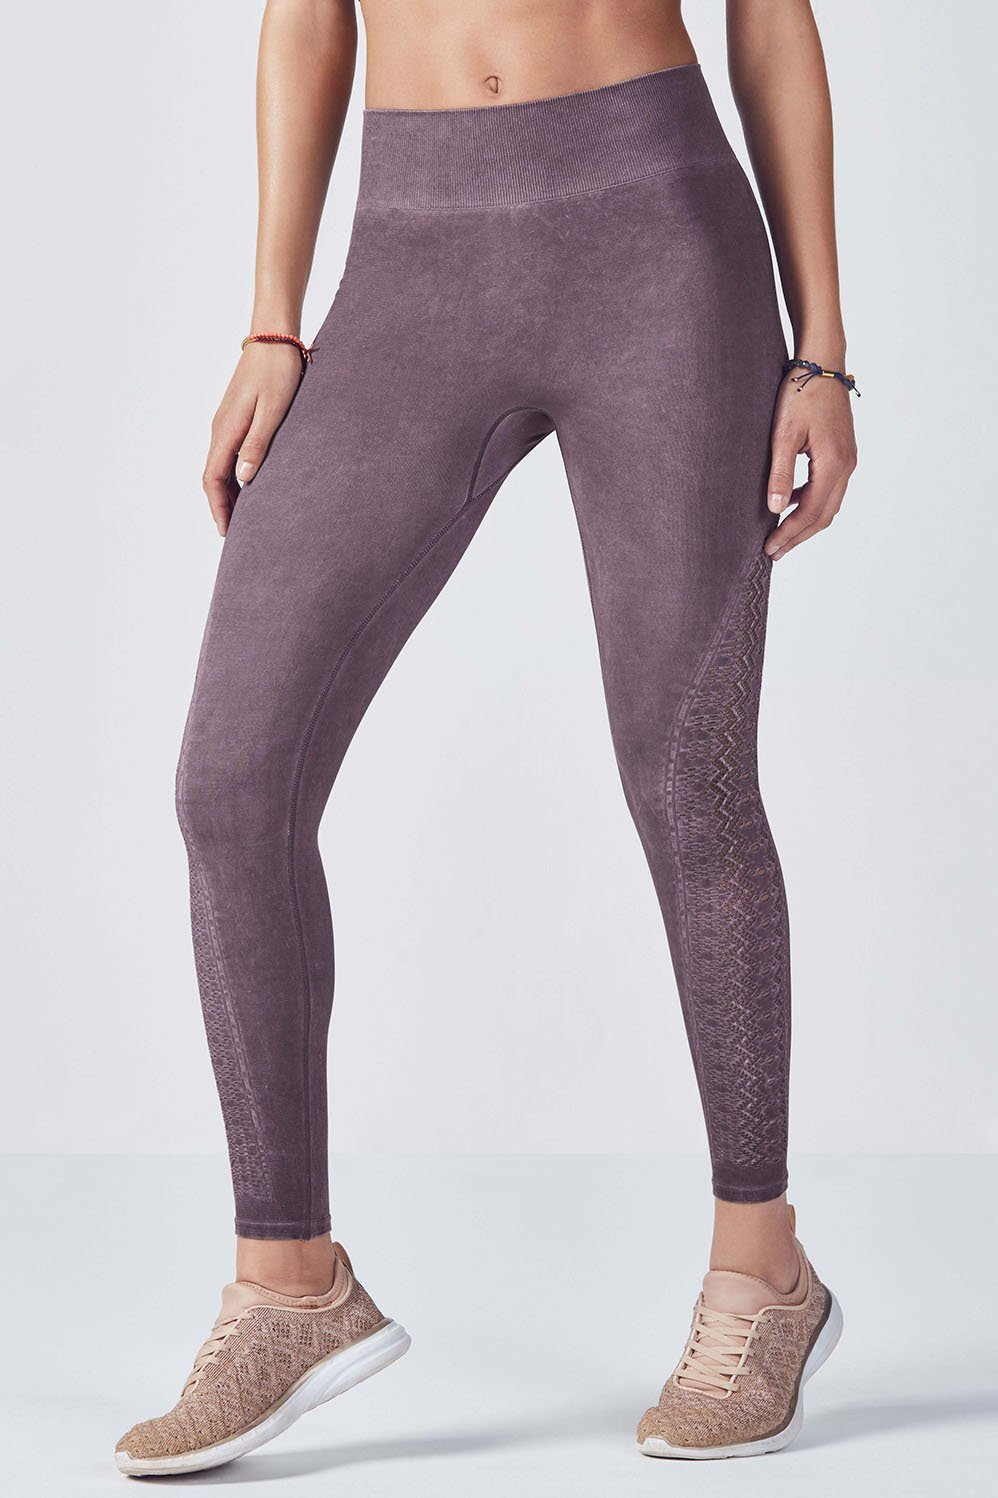 Fabletics Tight Seamless Solid Legging Womens Gray Size XXS